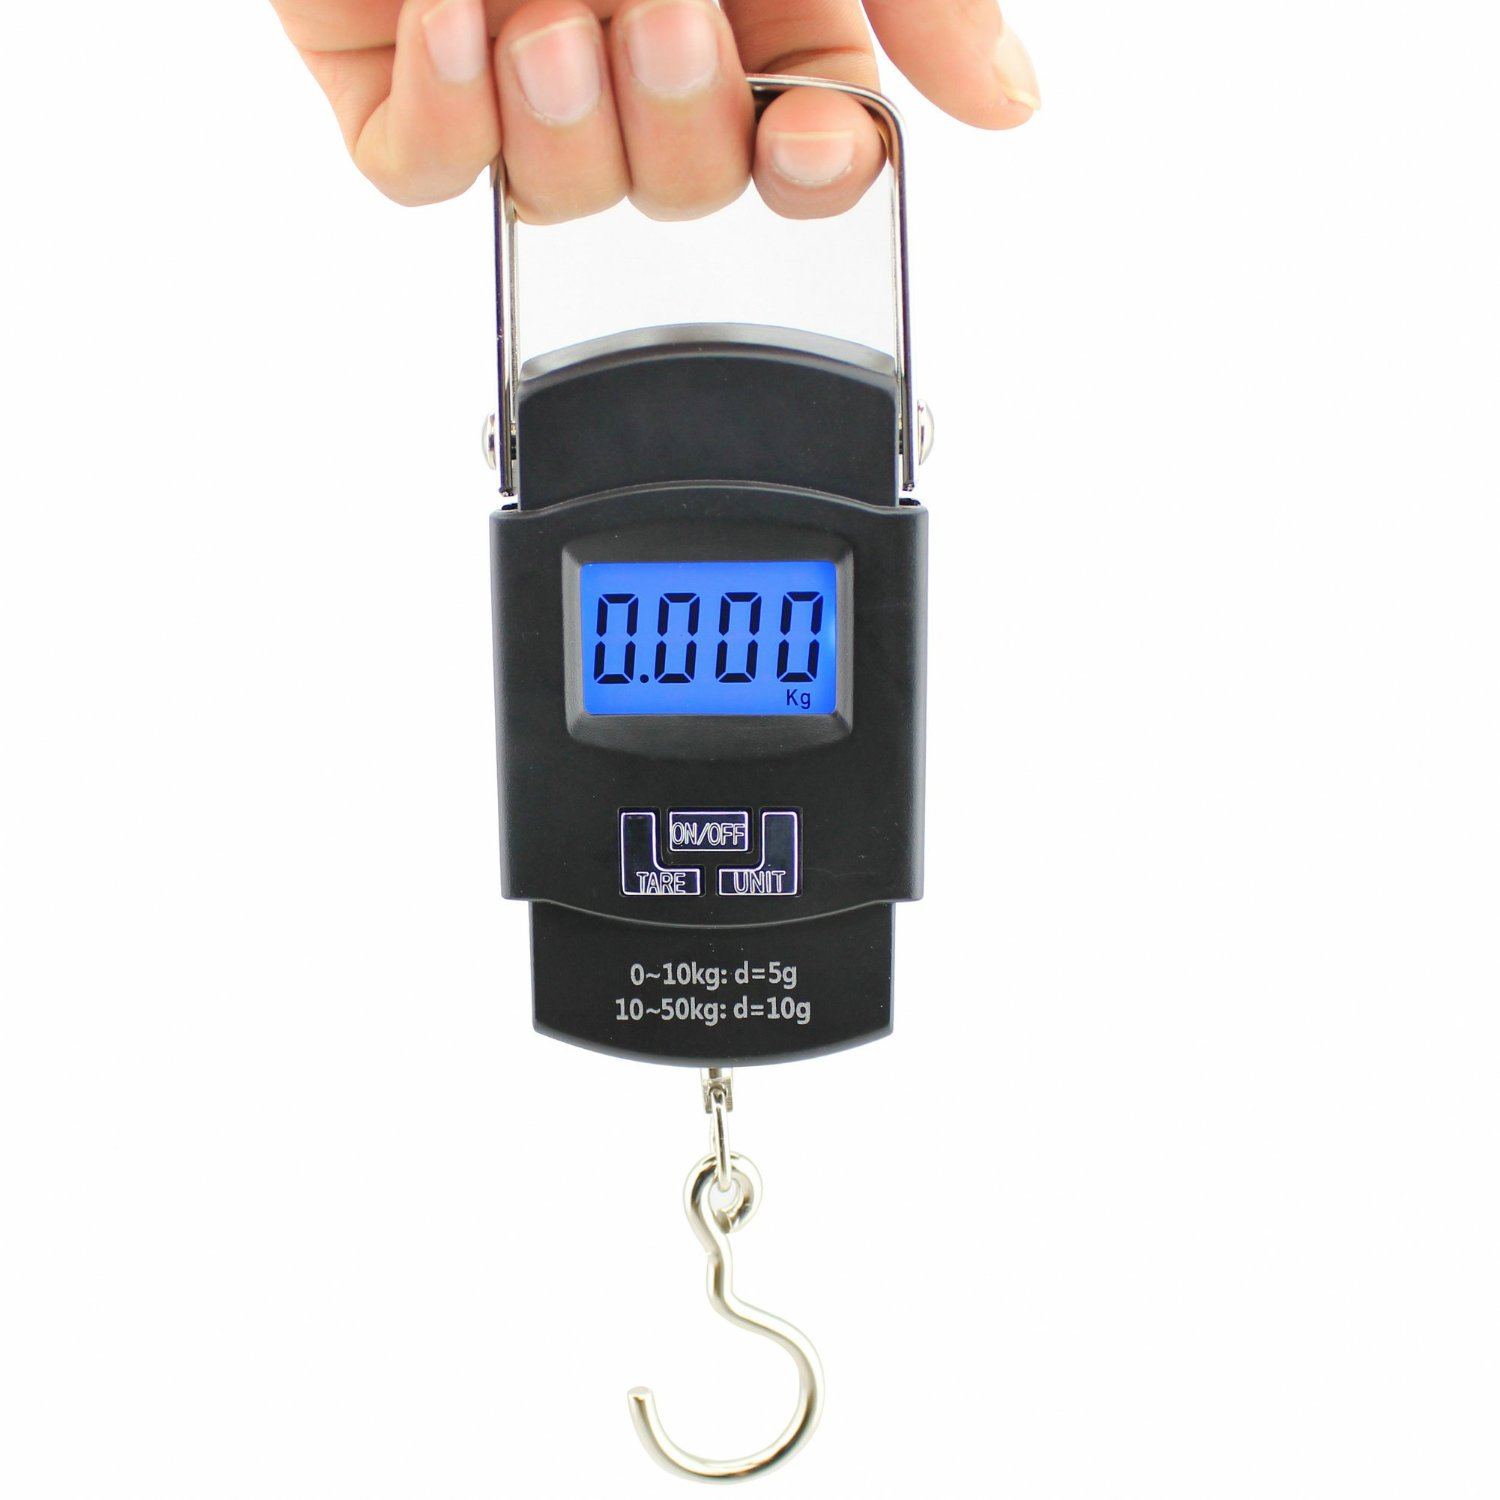 Portable Digital Luggage Travel Scales Up to 50kg - Perfect for Suitca